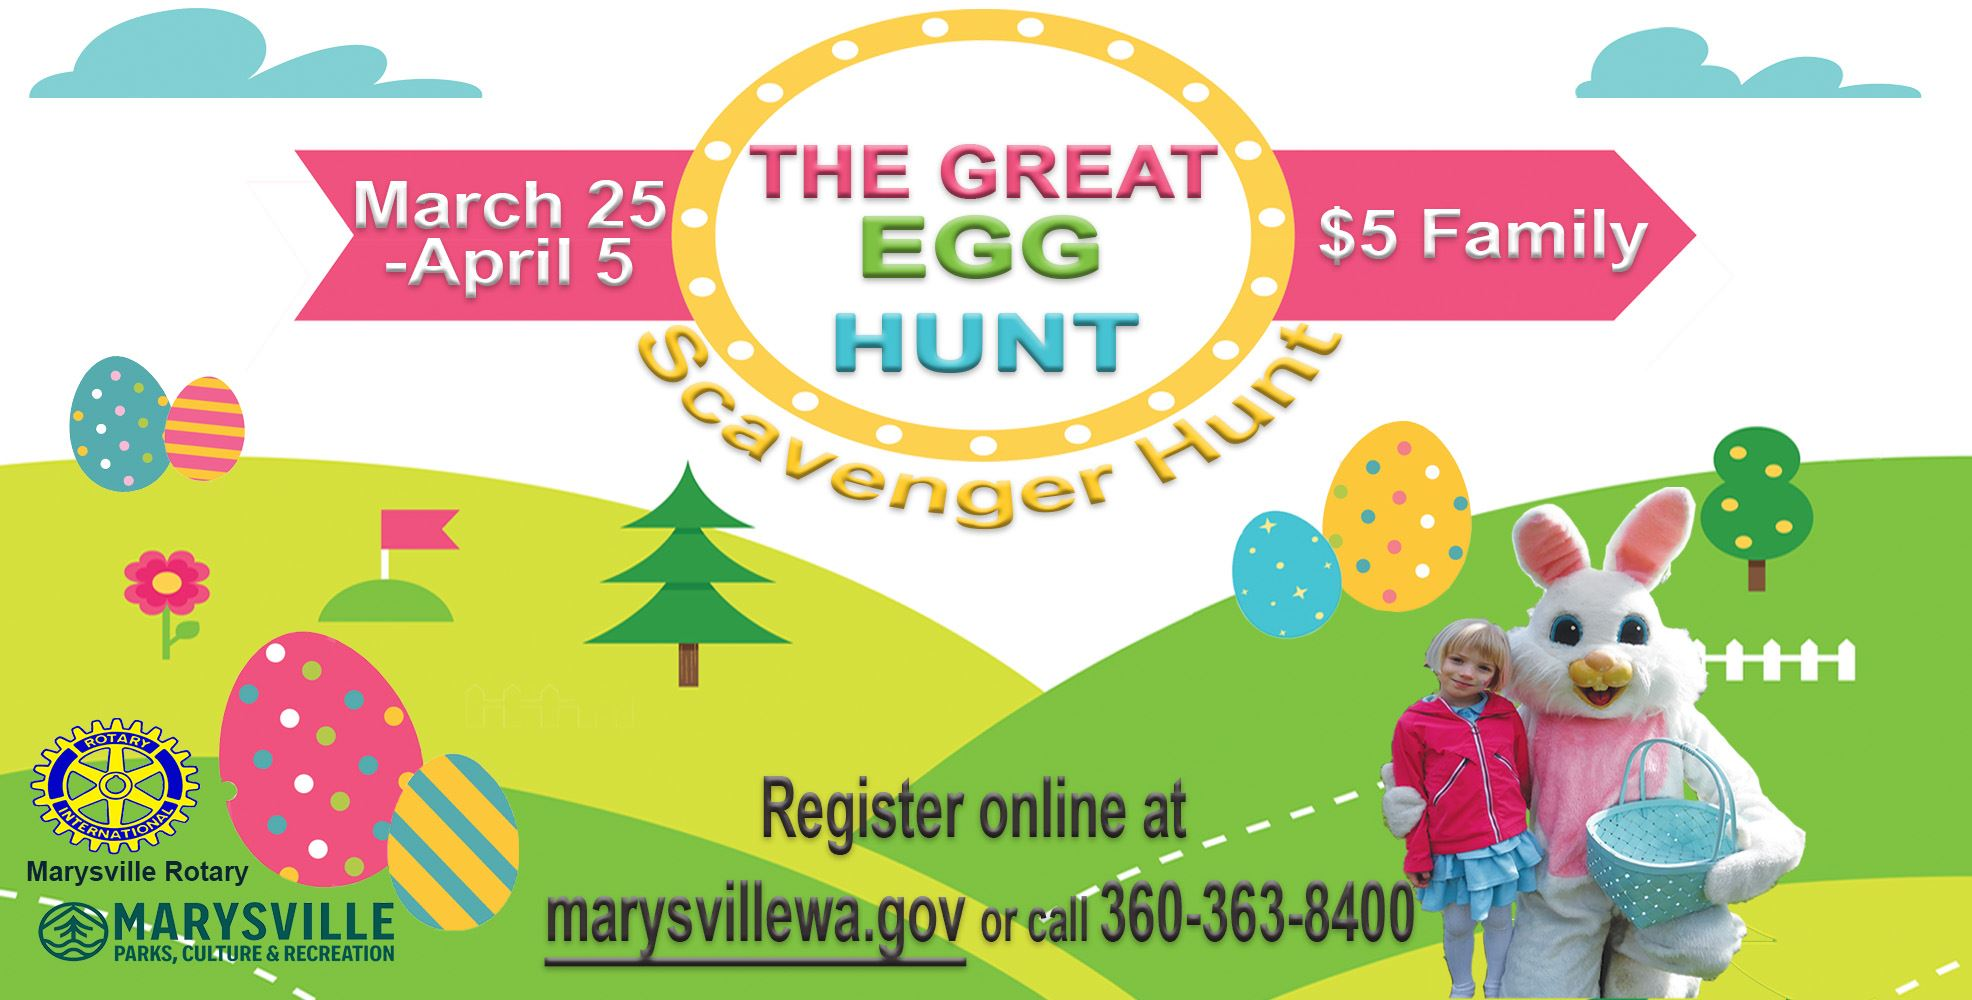 The Great Egg Hunt March 25-April 5